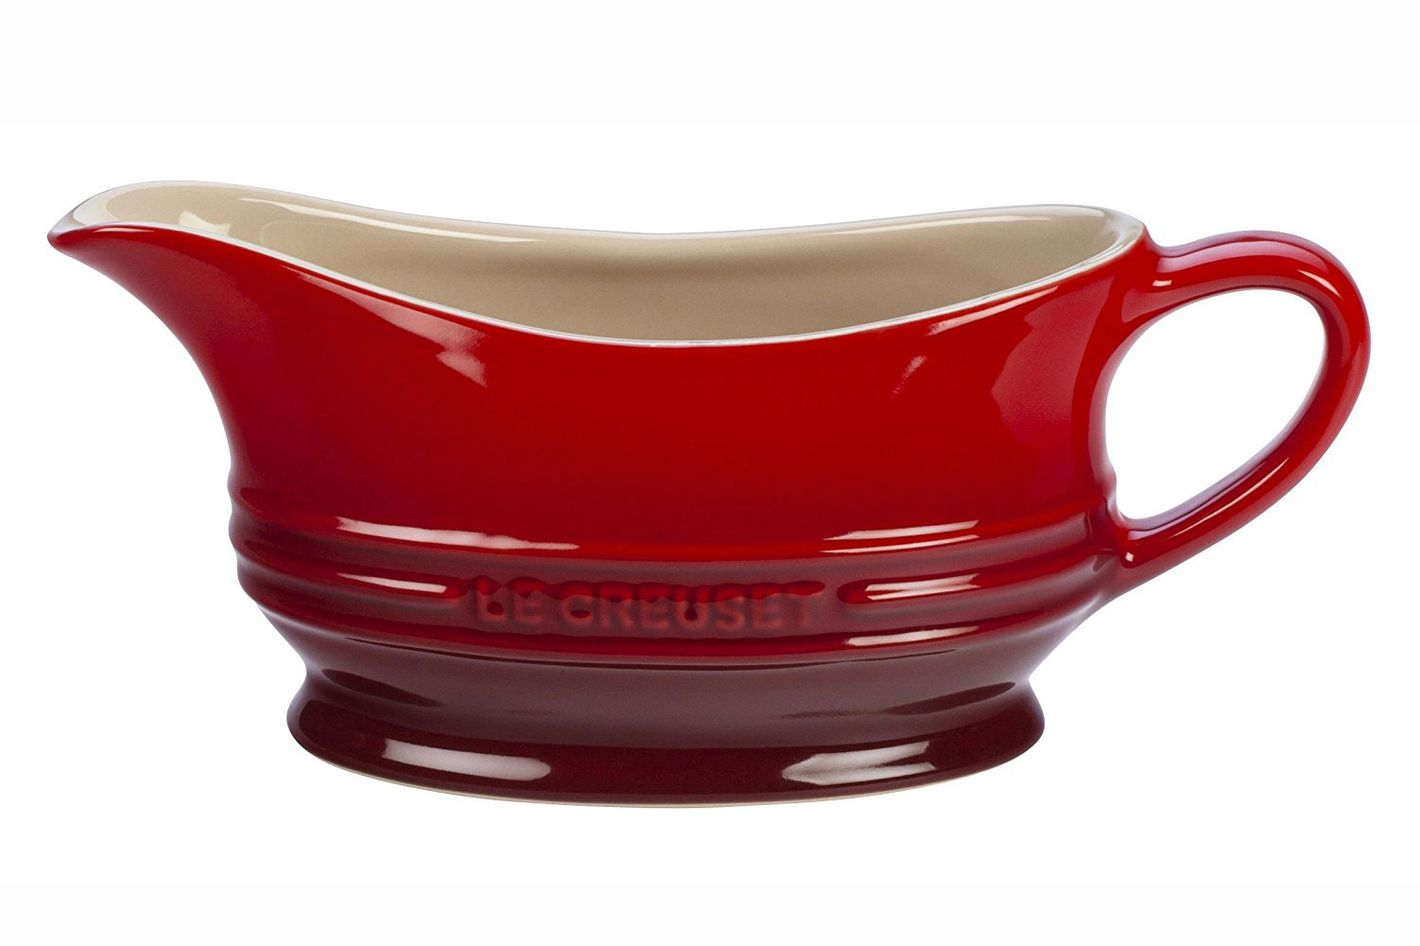 Le Creuset Stoneware 12-Ounce Gravy Boat, Cerise (Cherry Red)